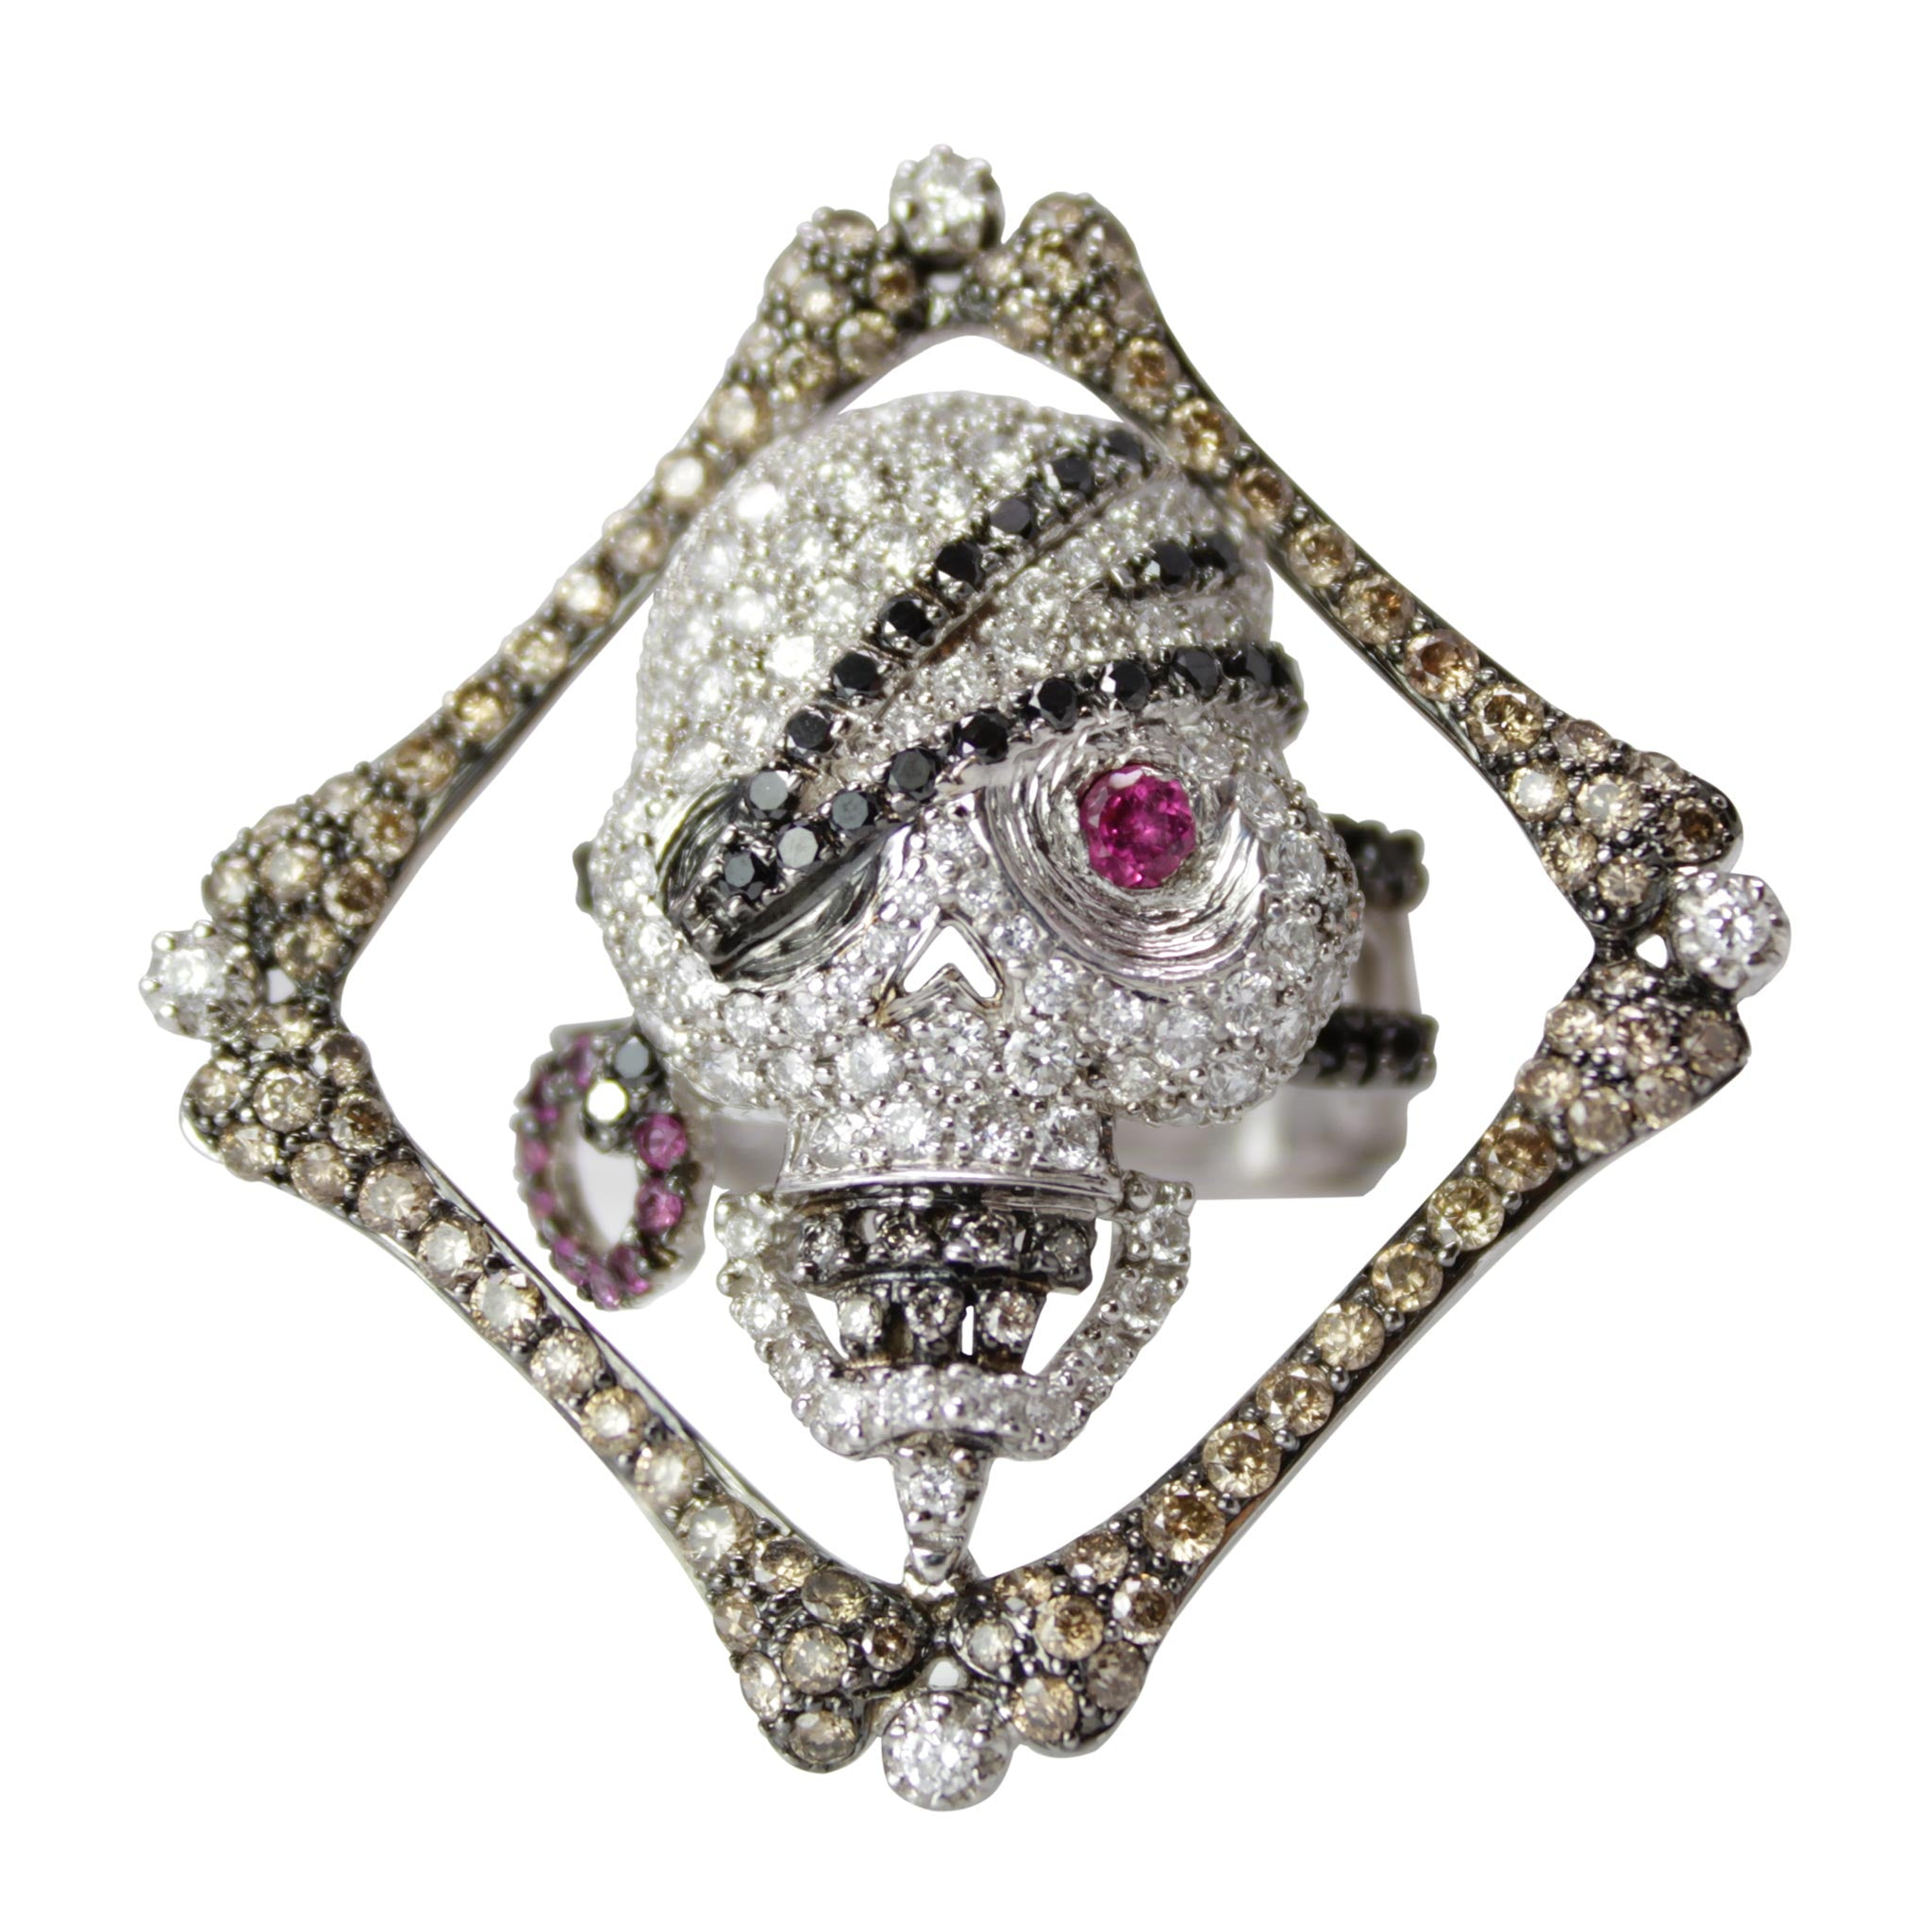 Treasure Hunter - Loree Rodkin 18k White Gold White, Champagne and Black Diamond Pirate Skull Ring